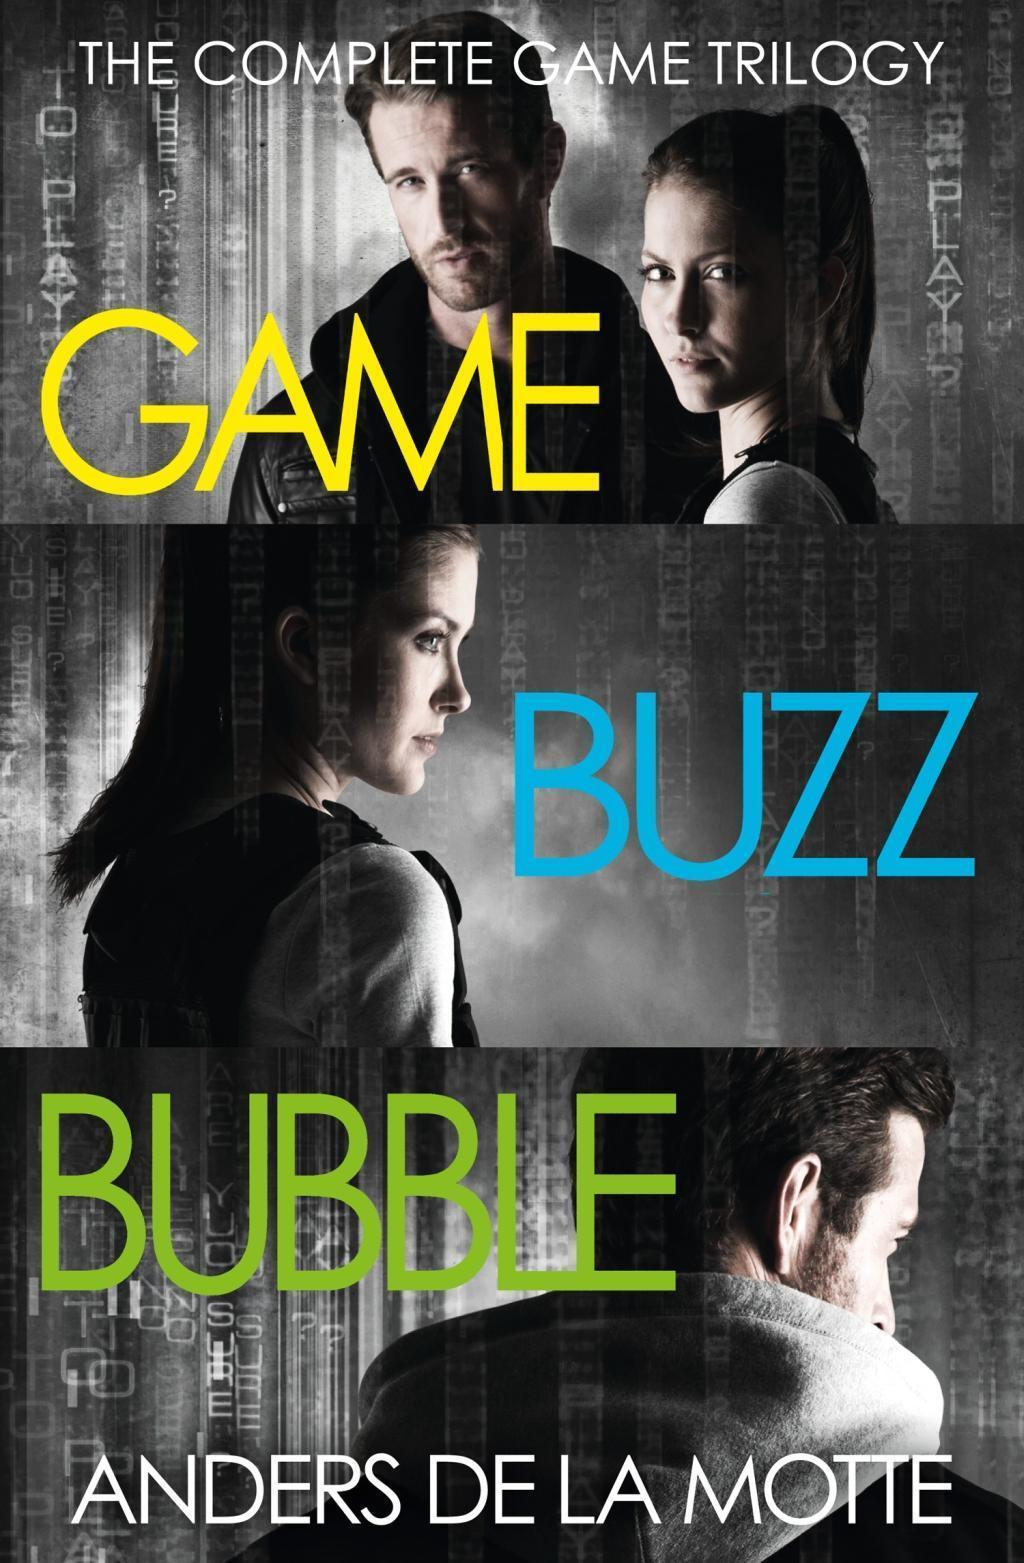 The Complete Game Trilogy: Game, Buzz, Bubble